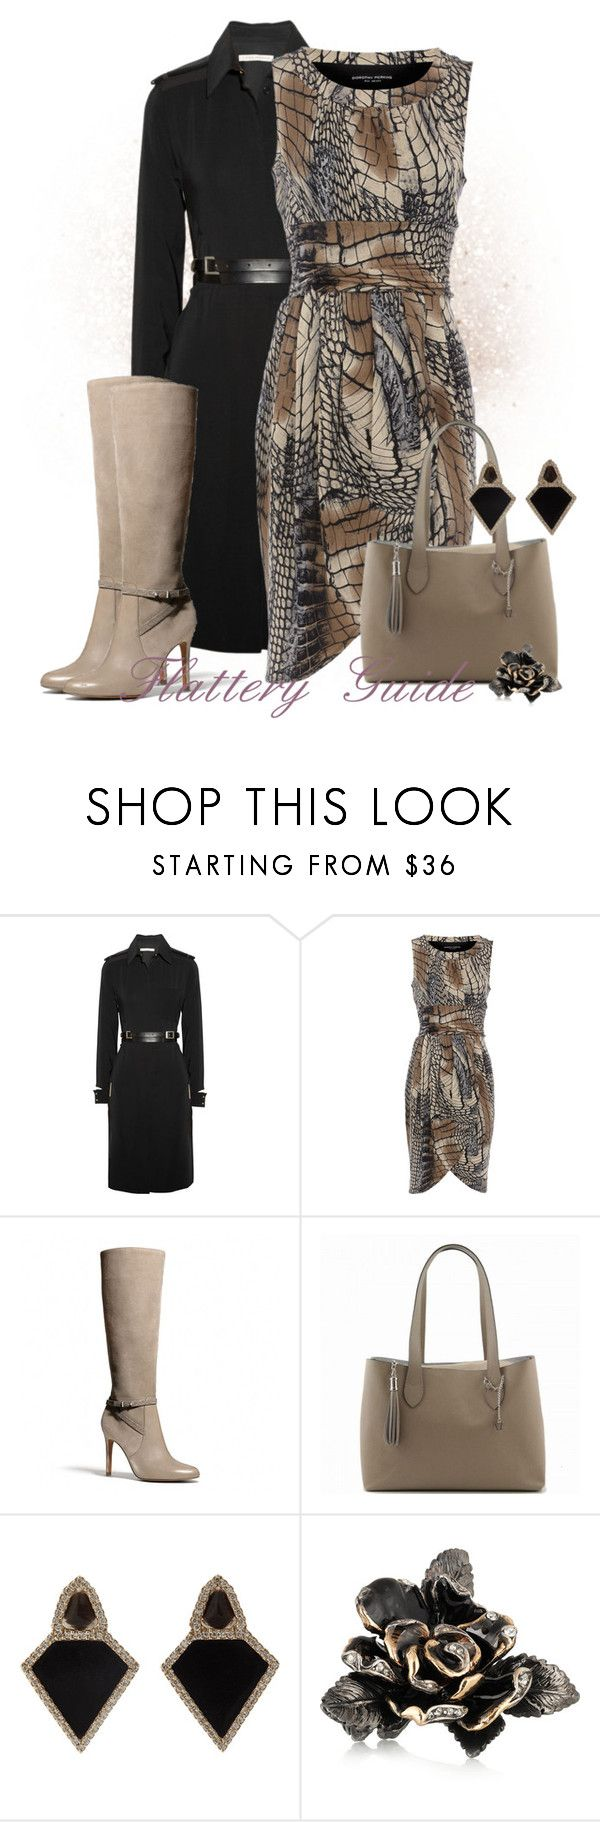 """Jessenia"" by flattery-guide ❤ liked on Polyvore featuring Victoria Beckham, Dorothy Perkins, Coach, Monique Péan and Roberto Cavalli"